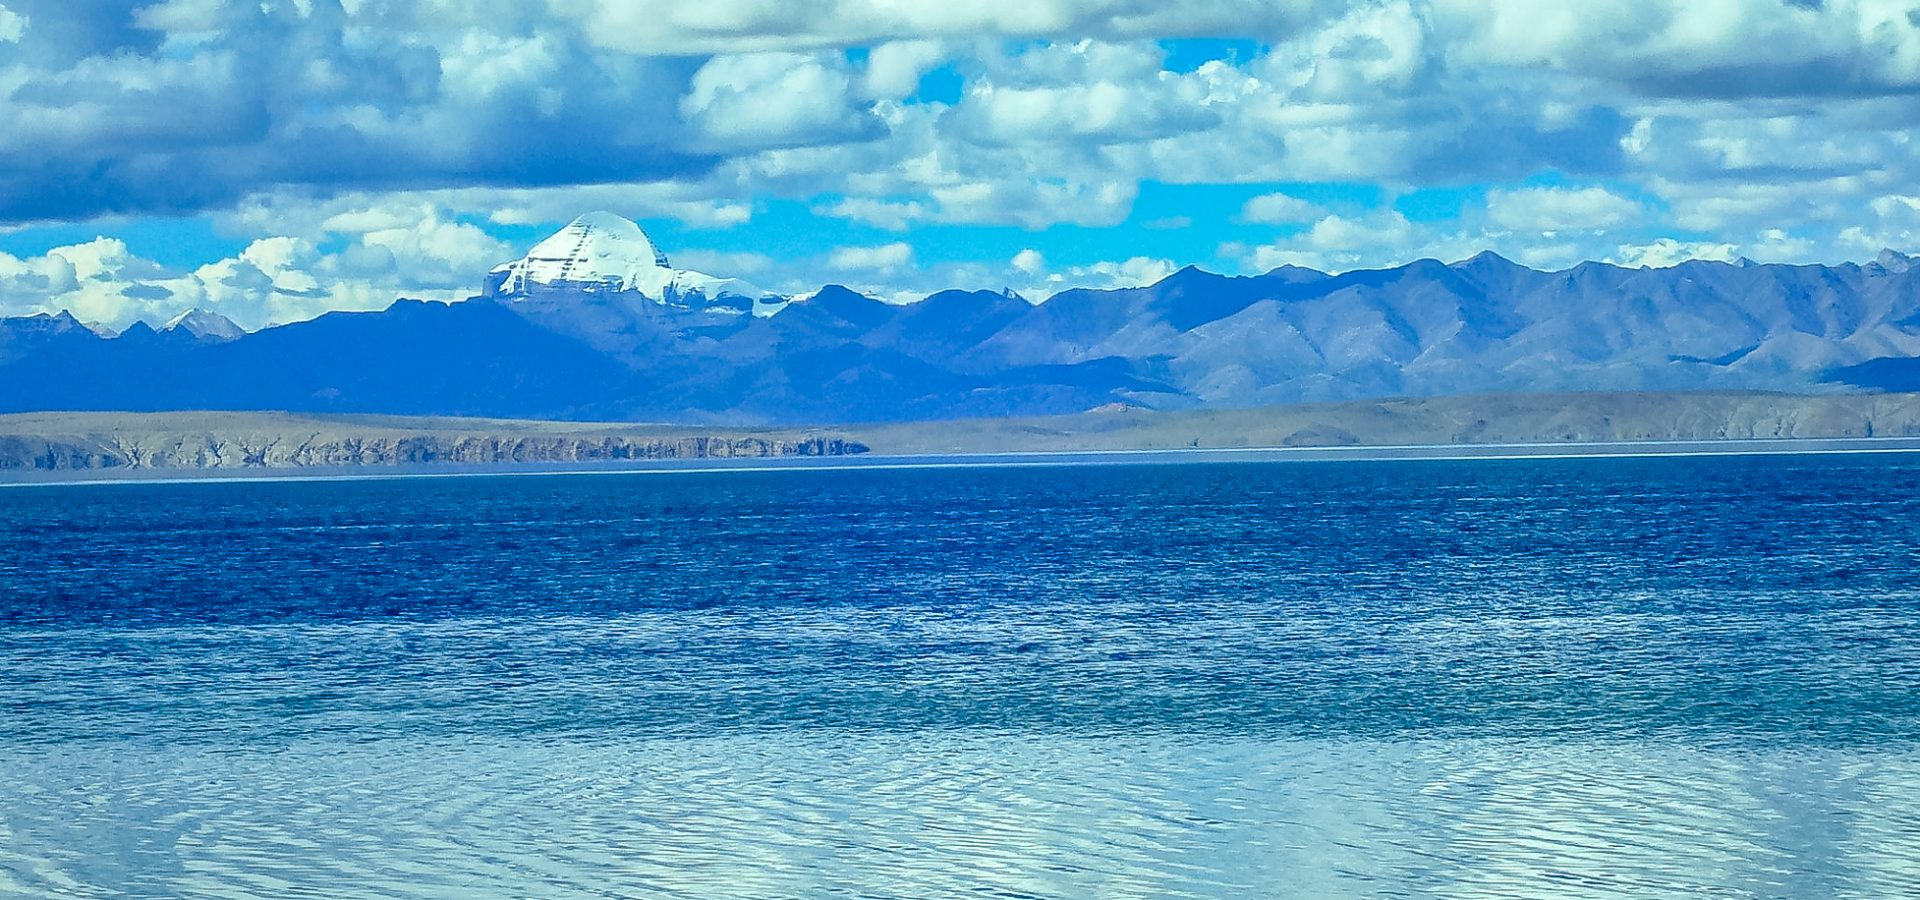 Mount Kailash Tour 10 Days